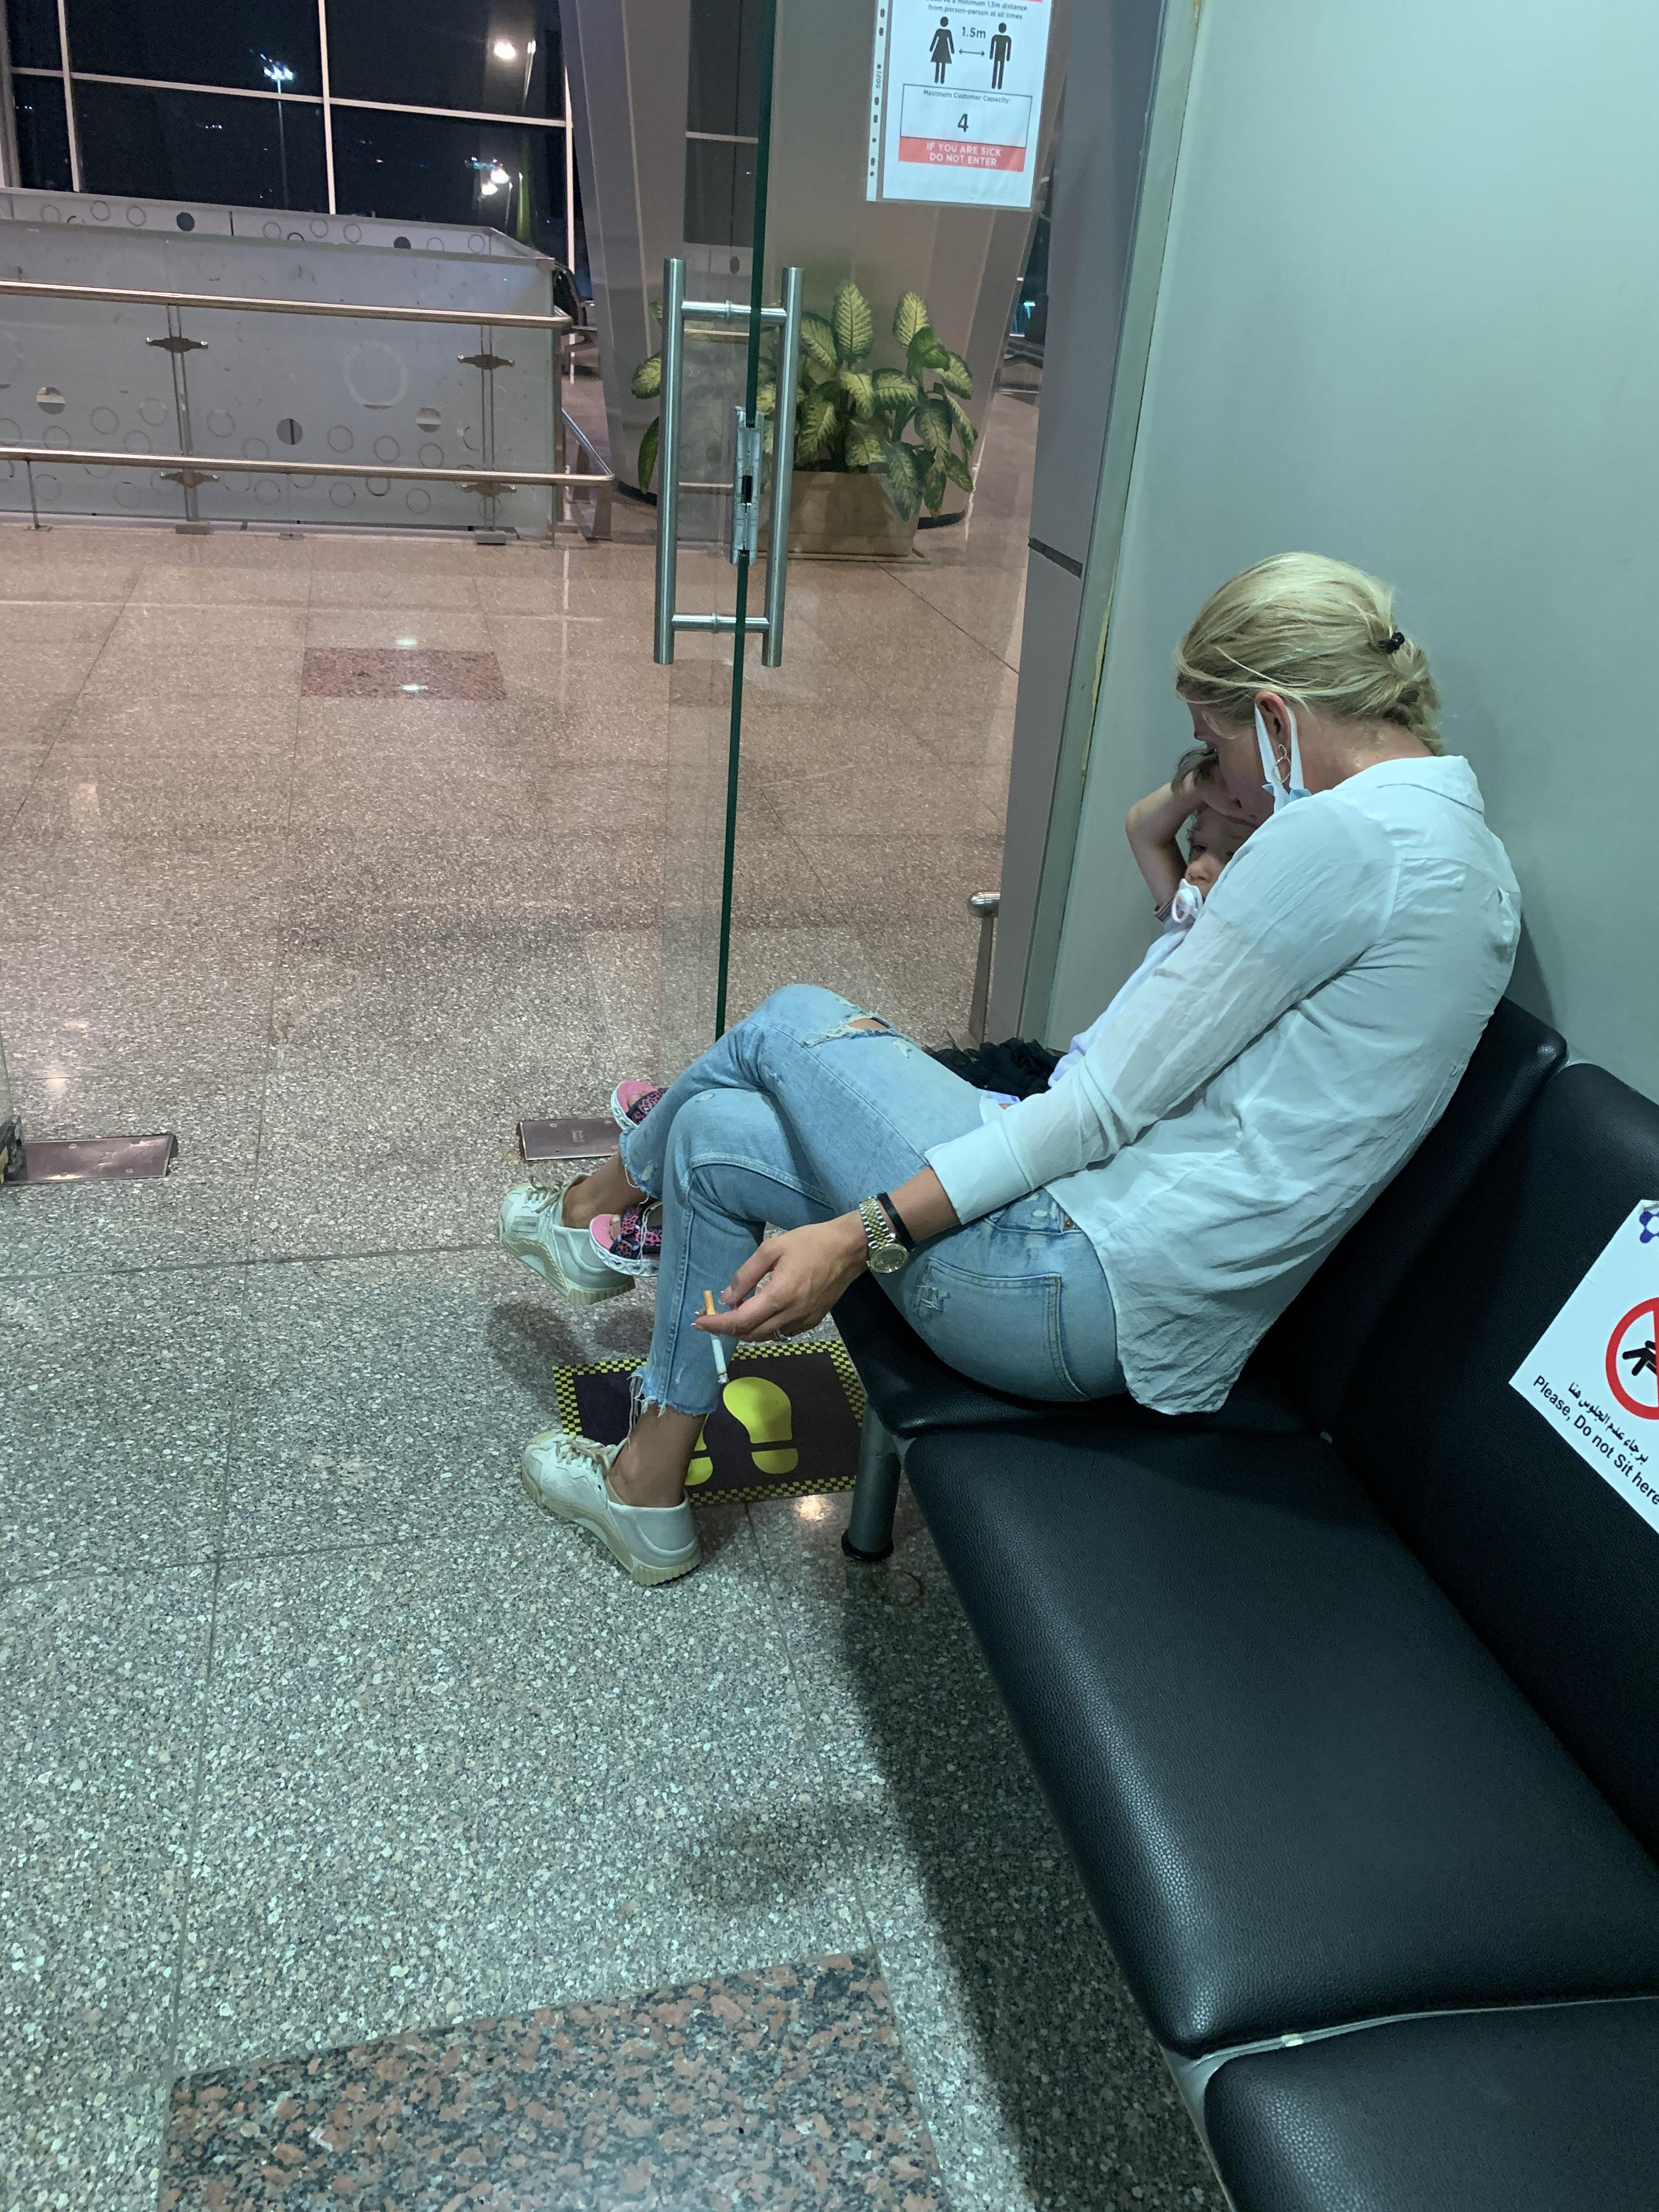 Taking your child to the airport smoking room